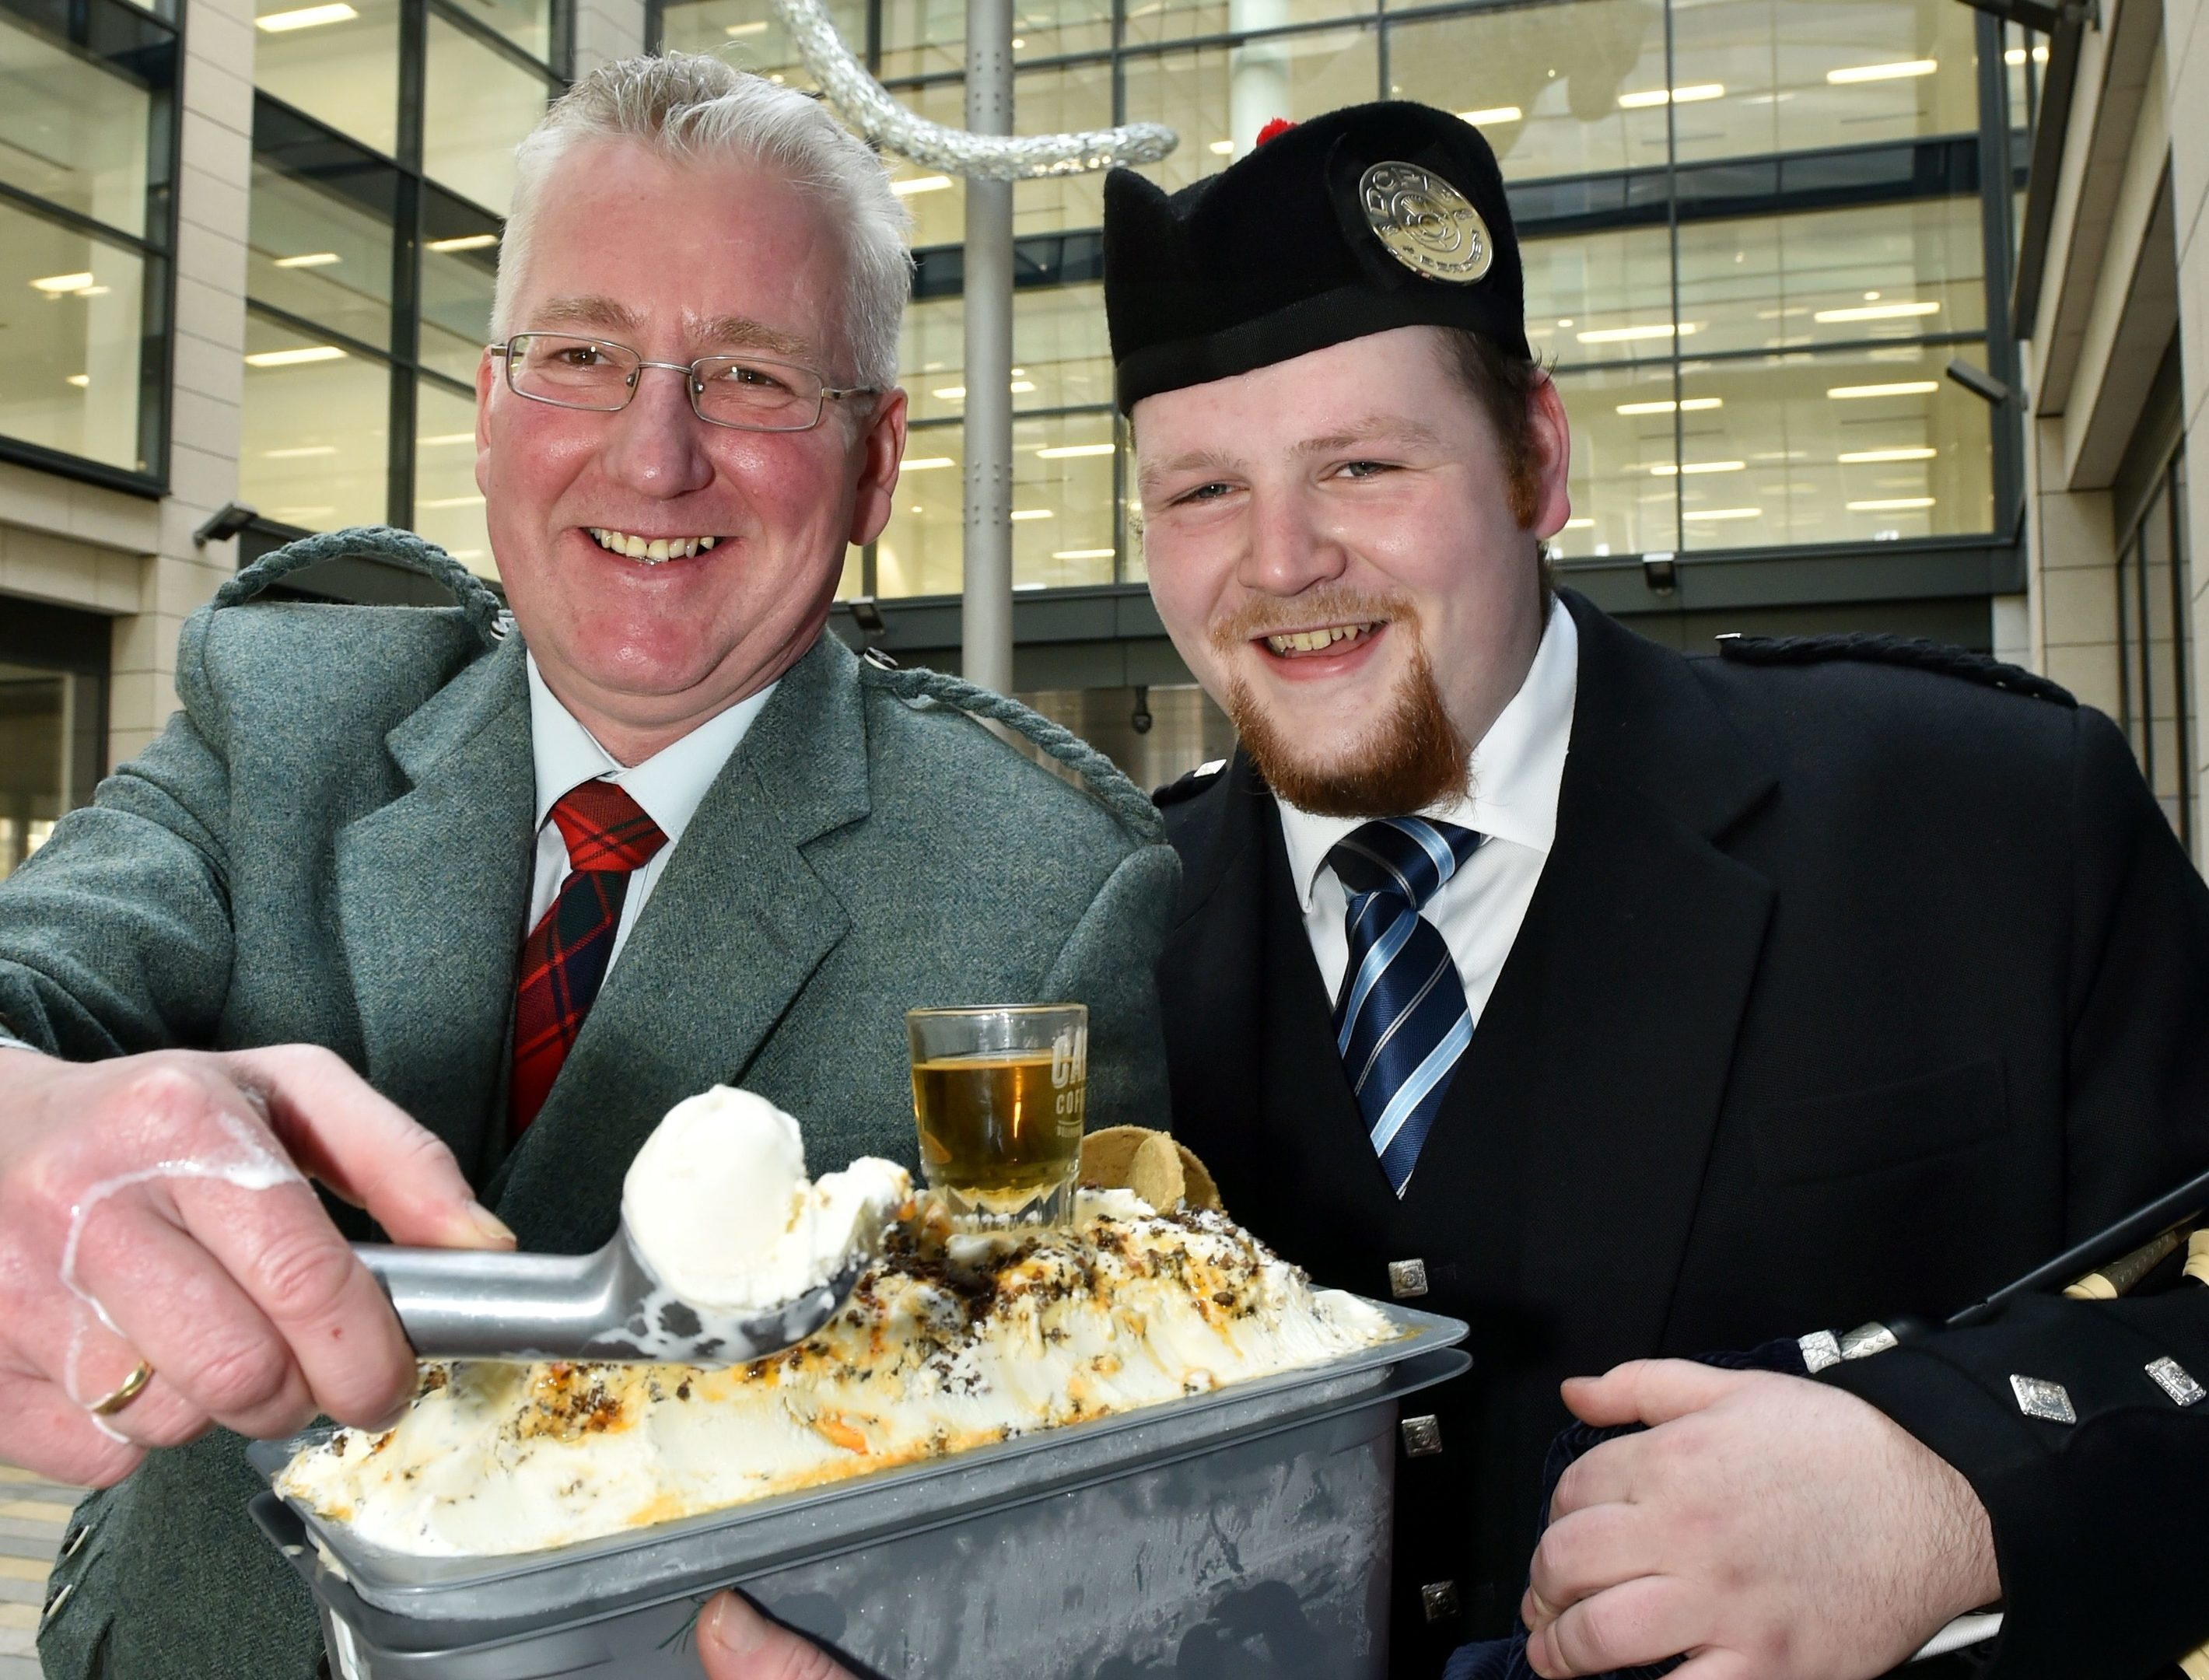 A 'Napoli' of Haggis Ice Cream was piped by Robert Reid, a member of the Deeside Caledona Pipe Band. The Haggis and Marmalade Ice Cream is tasted by Mackie's John Reid. (Colin Rennie)